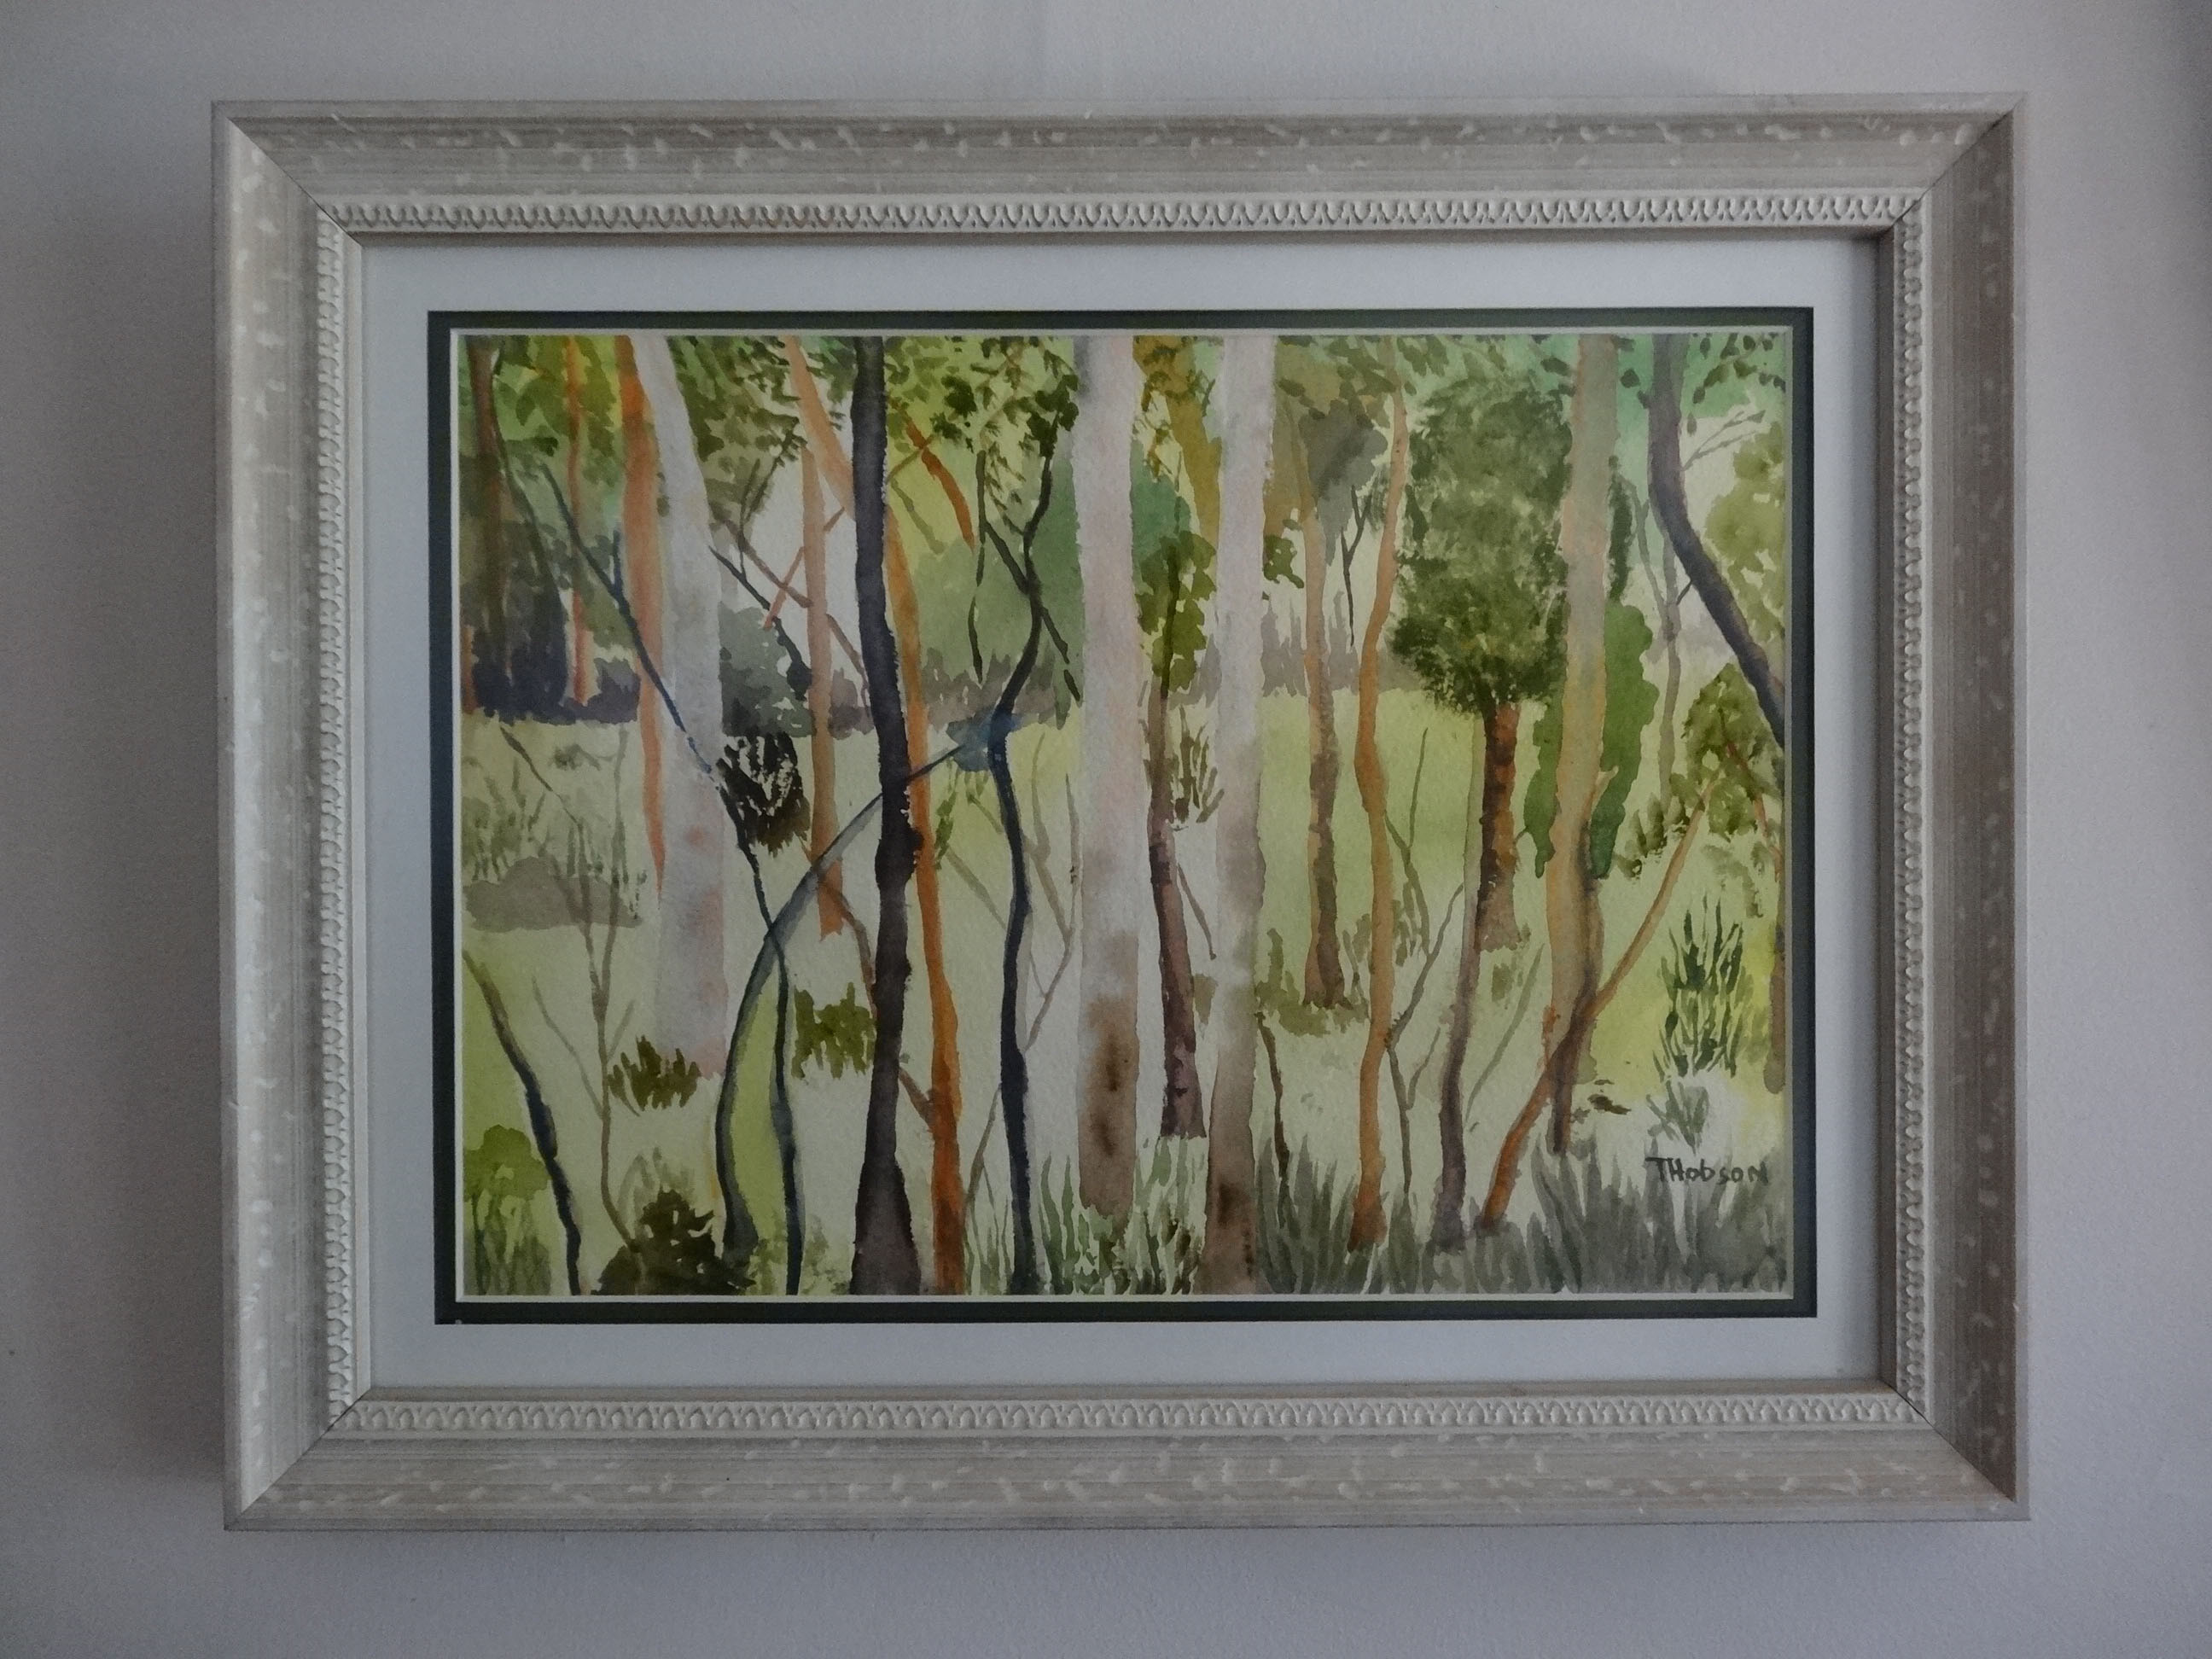 Picture Frames Brisbane | Mirrors | Custom Frames | Precision Picture Framing | Dsc03159